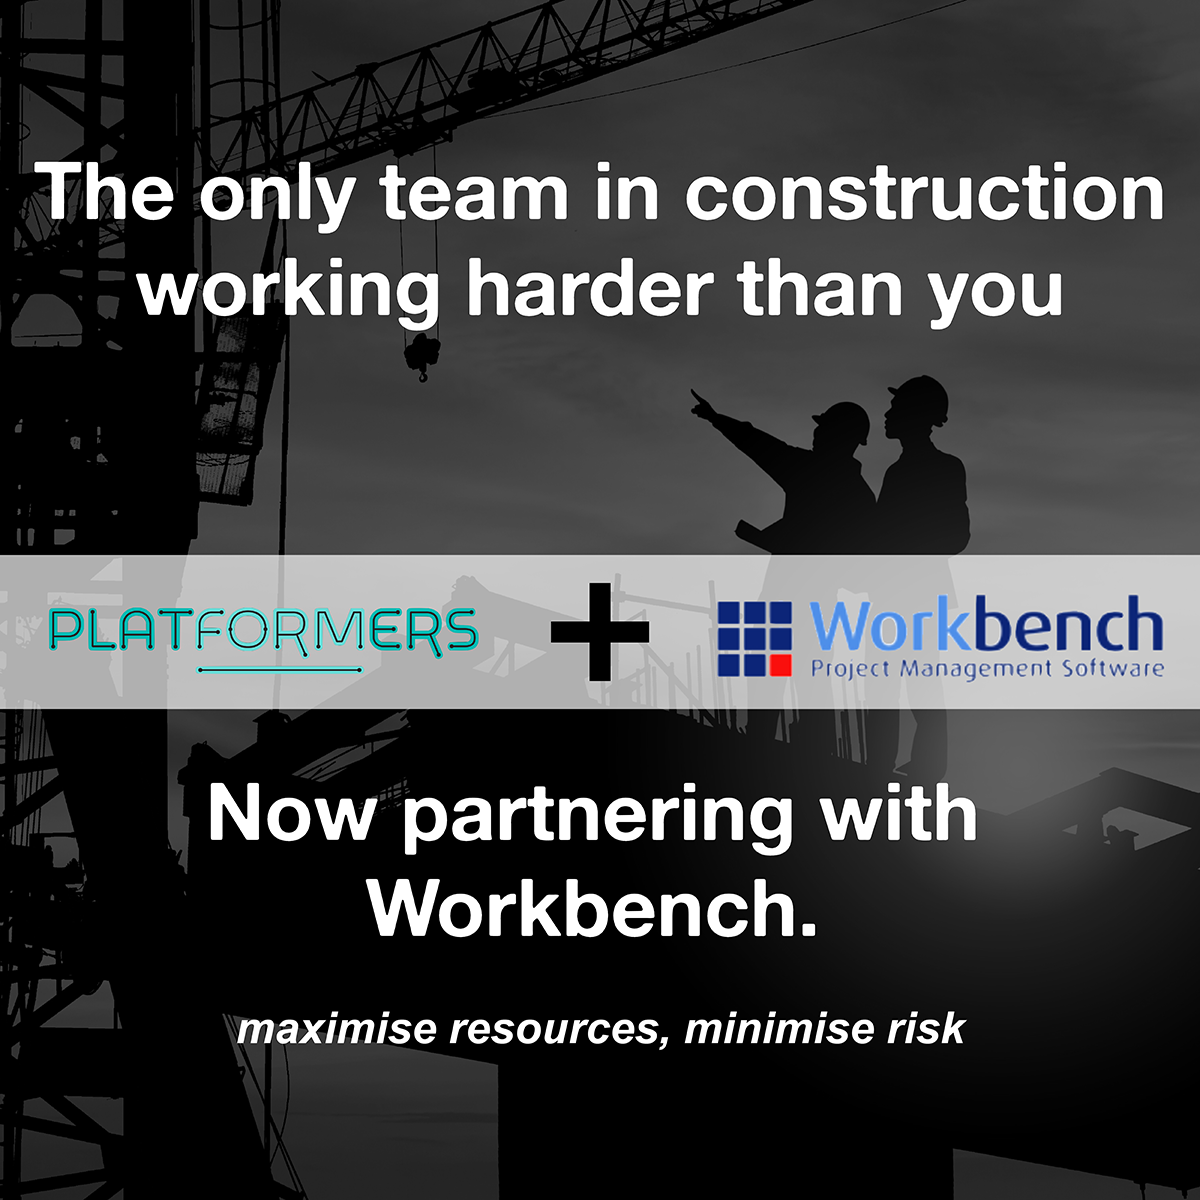 Workbench collaboration FB post